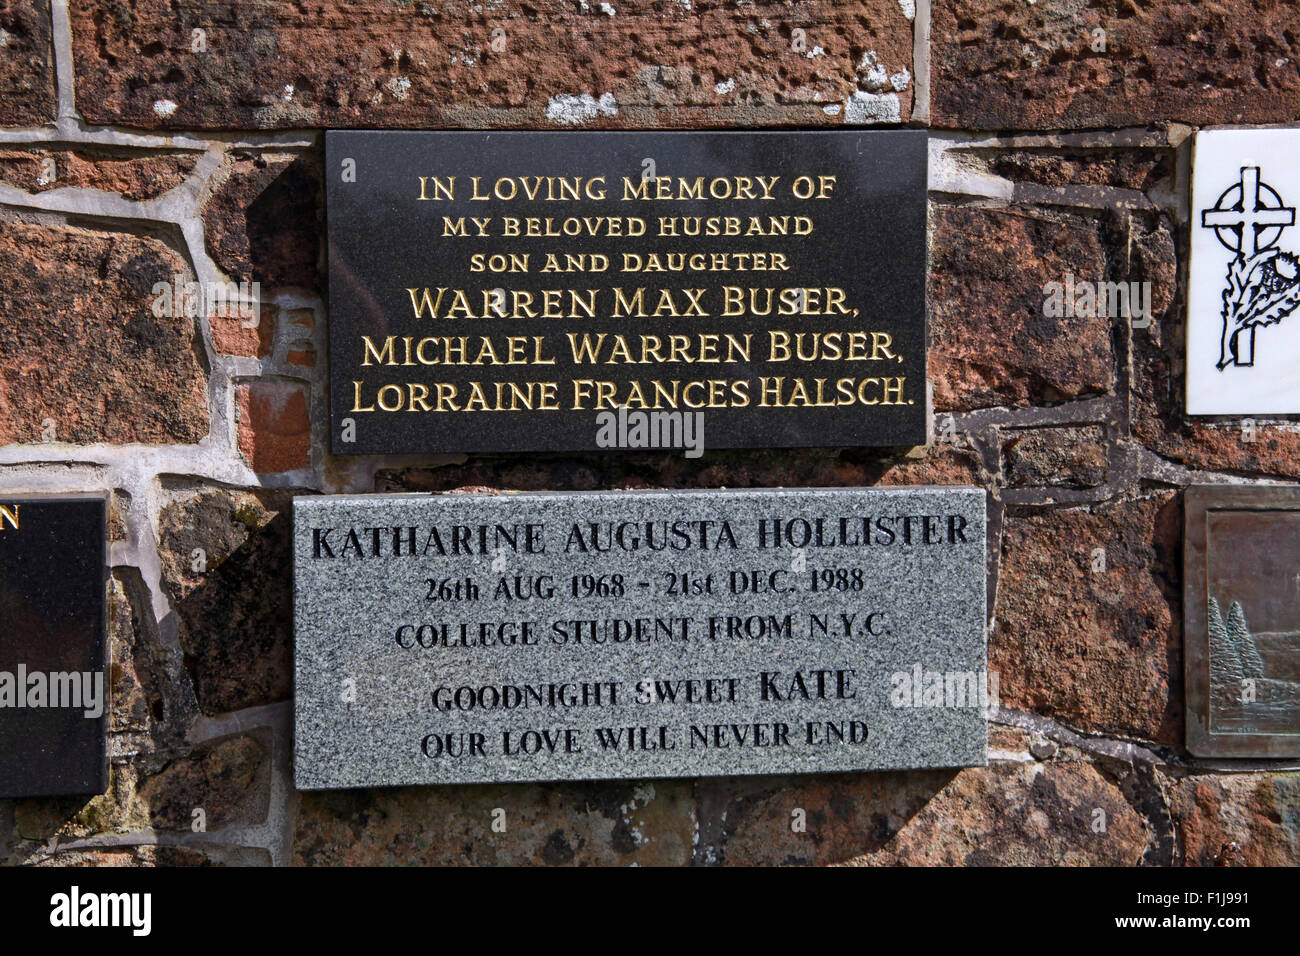 Max Buser Michael Warren lorraine Frances Halsch Katherine Augusta Hollister,Lodge,Visitors,Centre,DLVC,Trust,Lockerbie,Memorial,Remembrance,Scotland,Victims,Pan,Am,PanAm,flight,103,bomb,bombing,terrorist,December,1988,attack,crash,dead,site,21/12/1988,270,victims,Scottish,Town,New York,GoTonySmith,Lodge,Visitors,Centre,DLVC,Trust,Lockerbie,Memorial,Scotland,Victims,Pan,Am,PanAm,flight,103,bomb,bombing,terrorist,December,1988,attack,crash,dead,site,21/12/1988,270,victims,Scottish,Town,conspiracy,blast,Tundergarth,Room,garden,of,Dryfesdale,Cemetery,news,Cultural,understanding,remembering,innocent,transatlantic,Frankfurt,Detroit,Libyan,Libya,Colonel Muammar Gaddafi,civil,case,compensation,terrorism,PA103,30,30years,years,Syracuse,University,SU,family,collections,Story,Archive,Archives,40,35,Timeline,saga,disaster,air,Scholars,program,programs,remembrance,Clipper Maid of the Seas,N739PA,Boeing,727,plane,aircraft,Scotland,UK,United Kingdom,GB,Great Britain,resting,place,Buy Pictures of,Buy Images Of,New York,al megrahi,30 Years